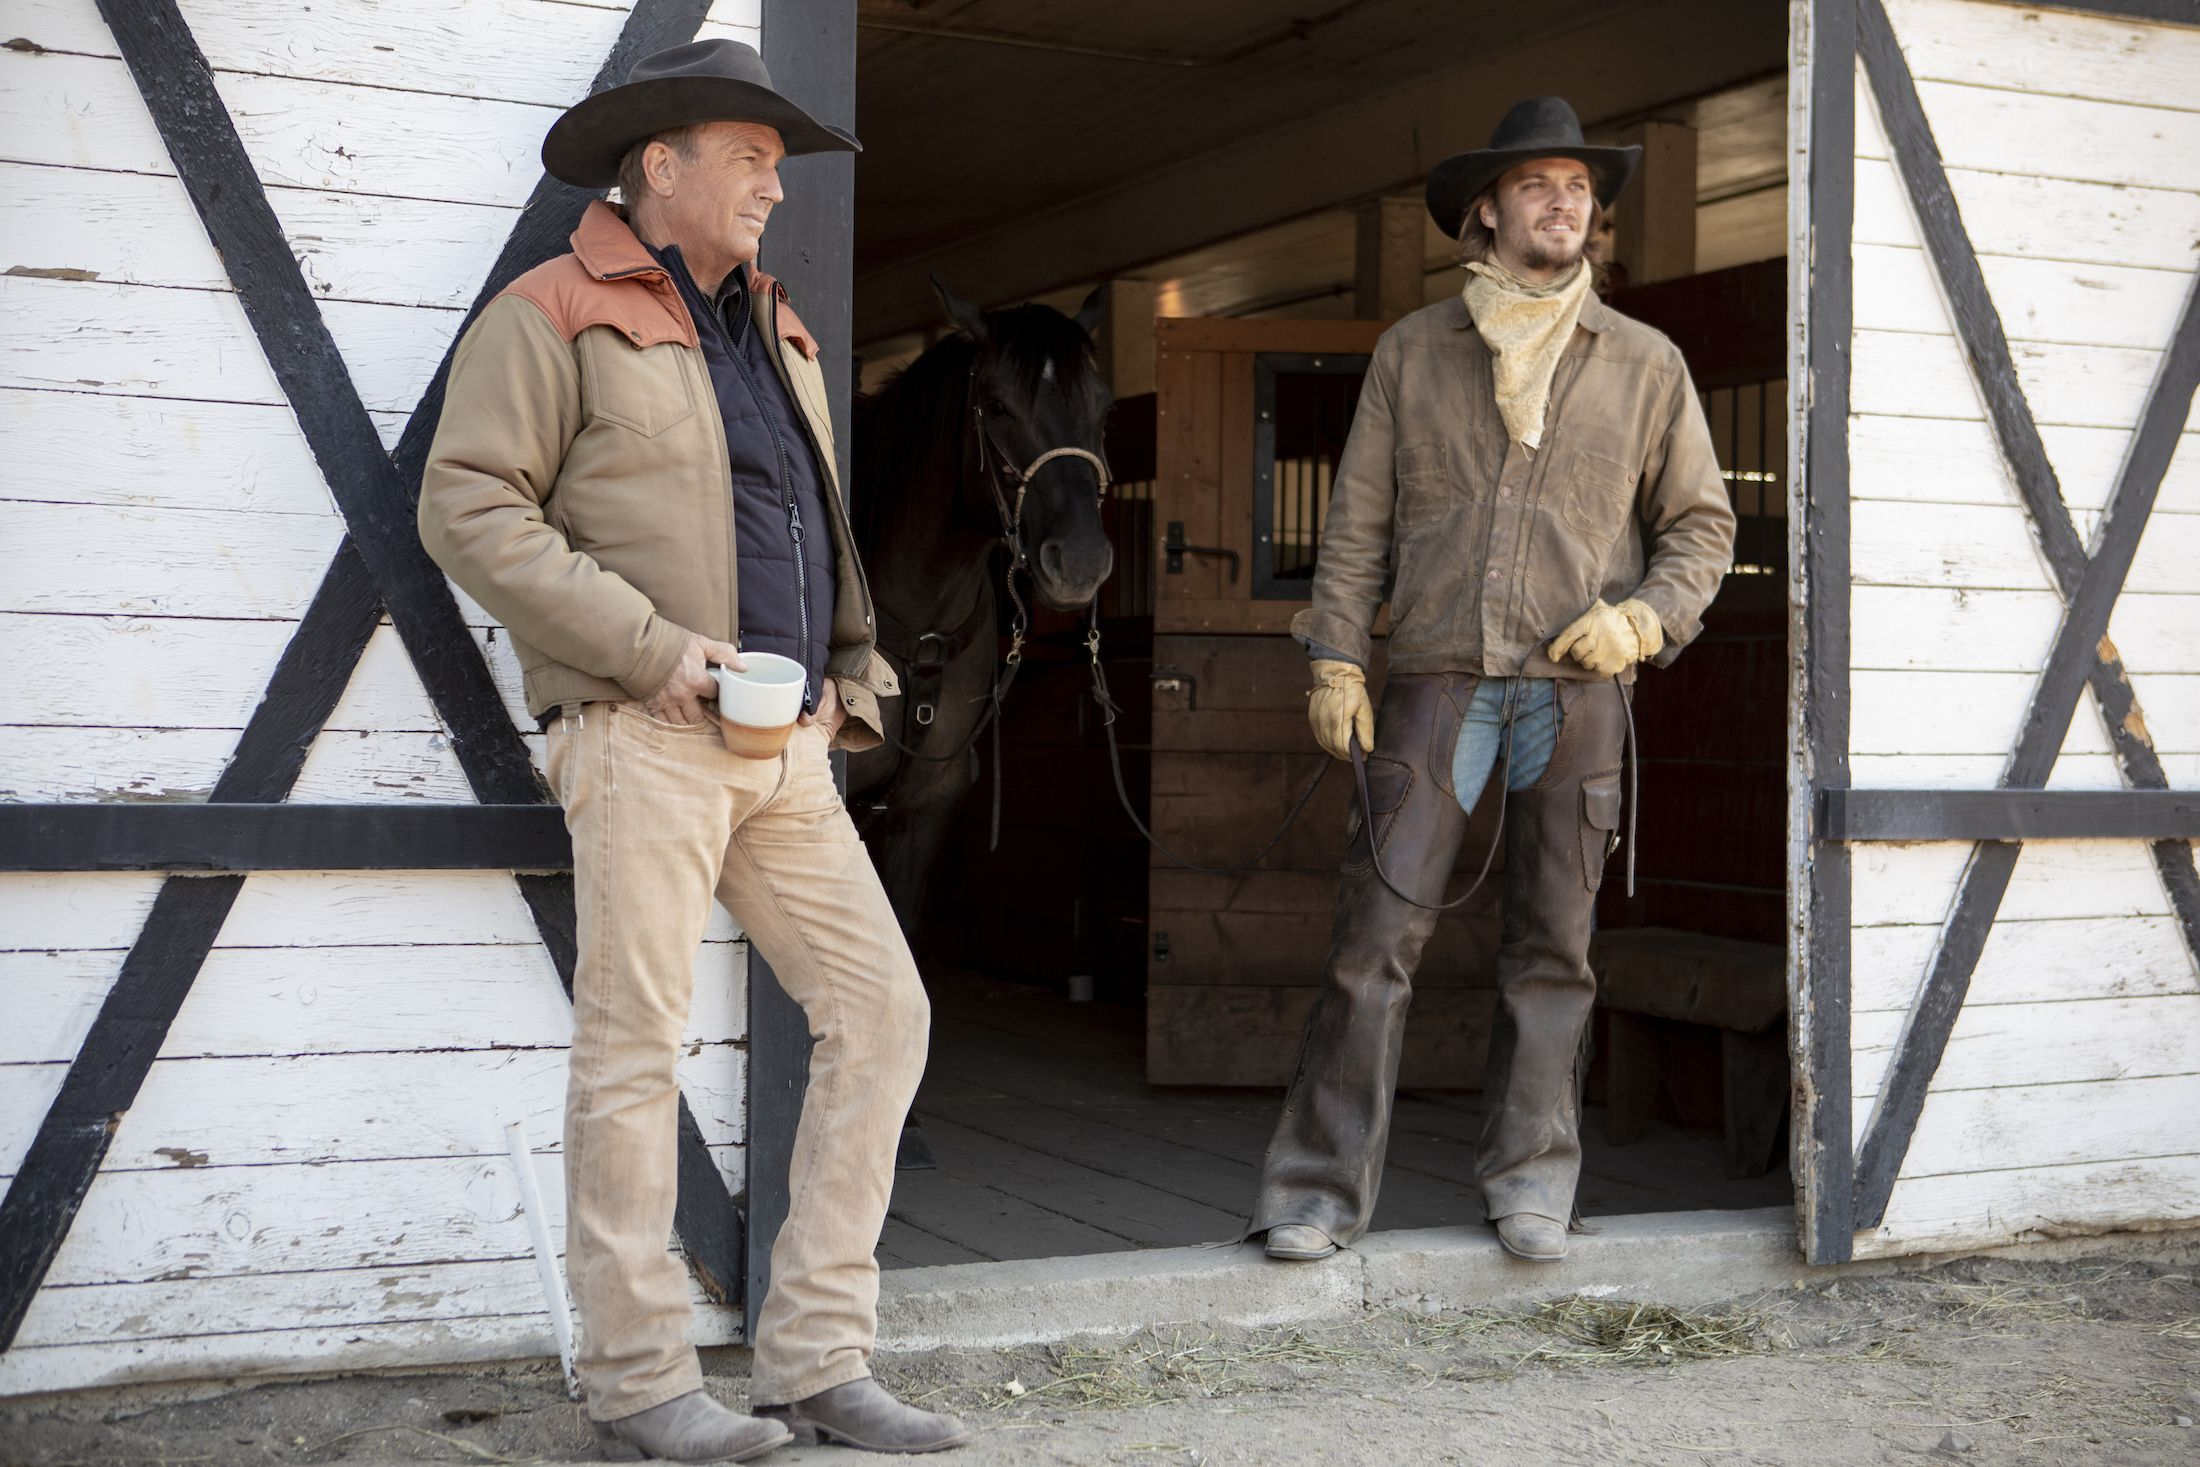 3627269d9 When Is 'Yellowstone' On - Why 'Yellowstone' Season 2 Won't Be on ...